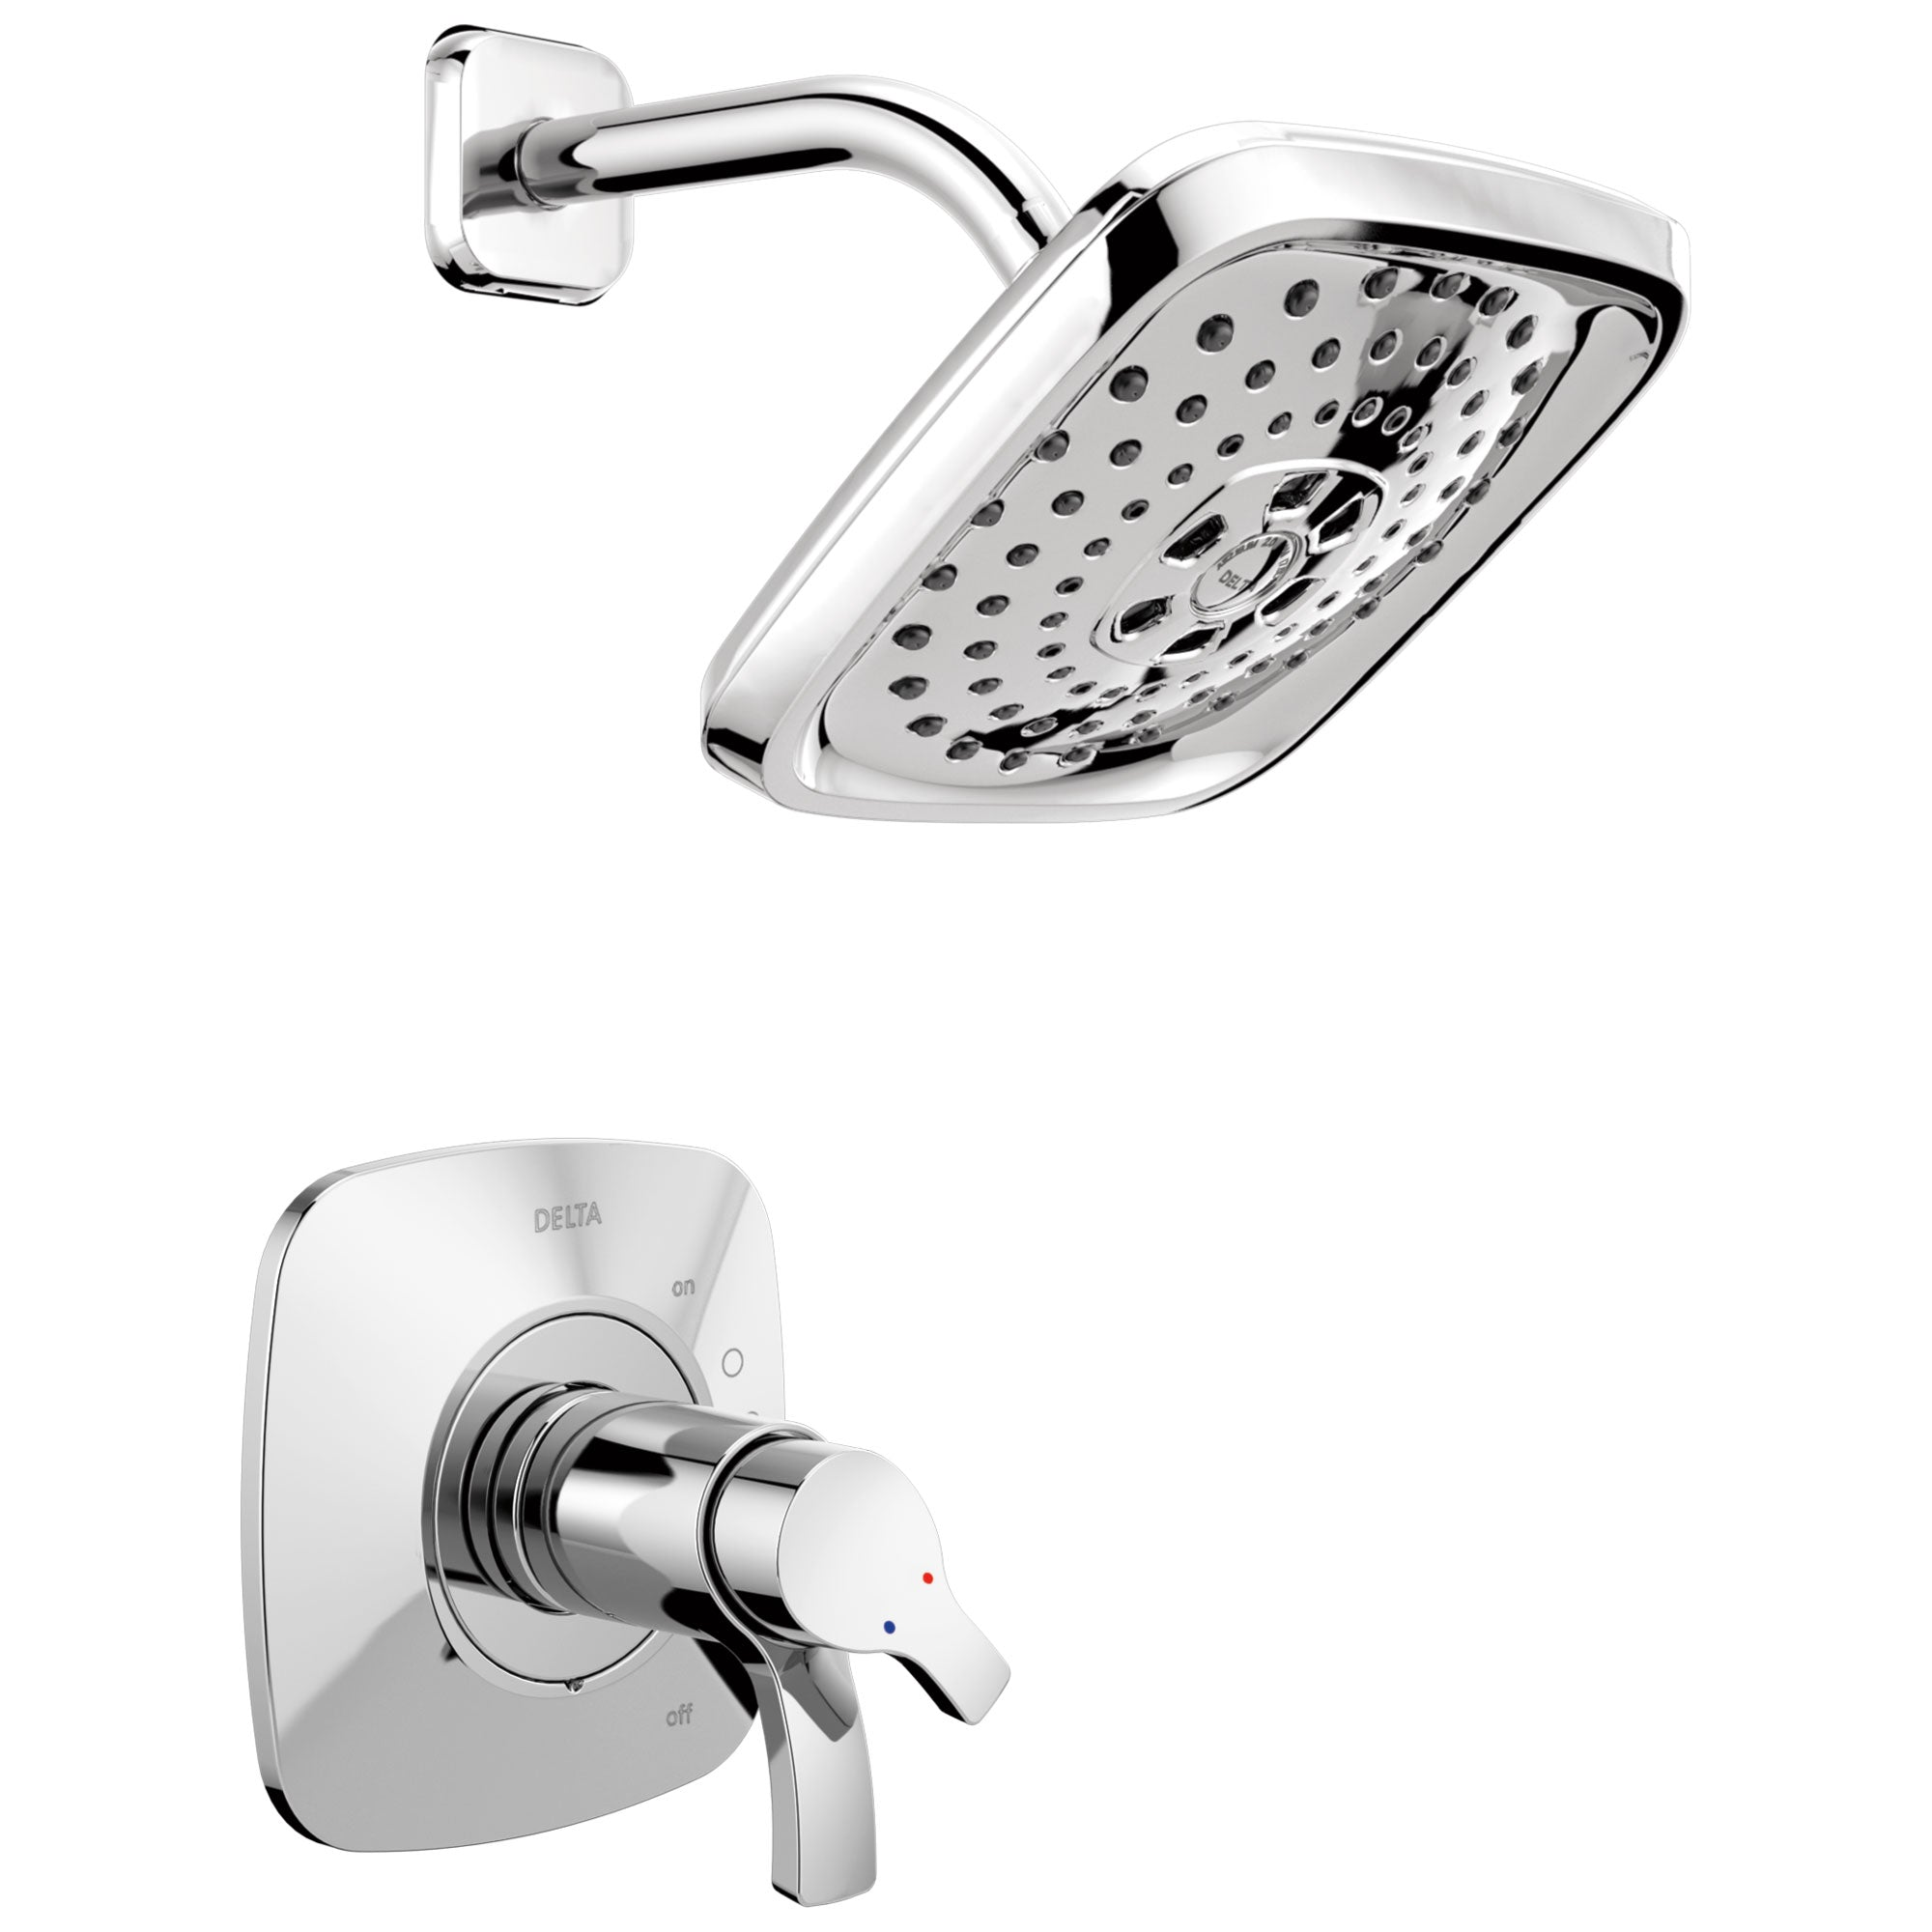 Delta Tesla Collection Chrome TempAssure 17T Series Modern Dual Temp and Pressure Control Shower Faucet Includes Rough-in Valve with Stops D1941V